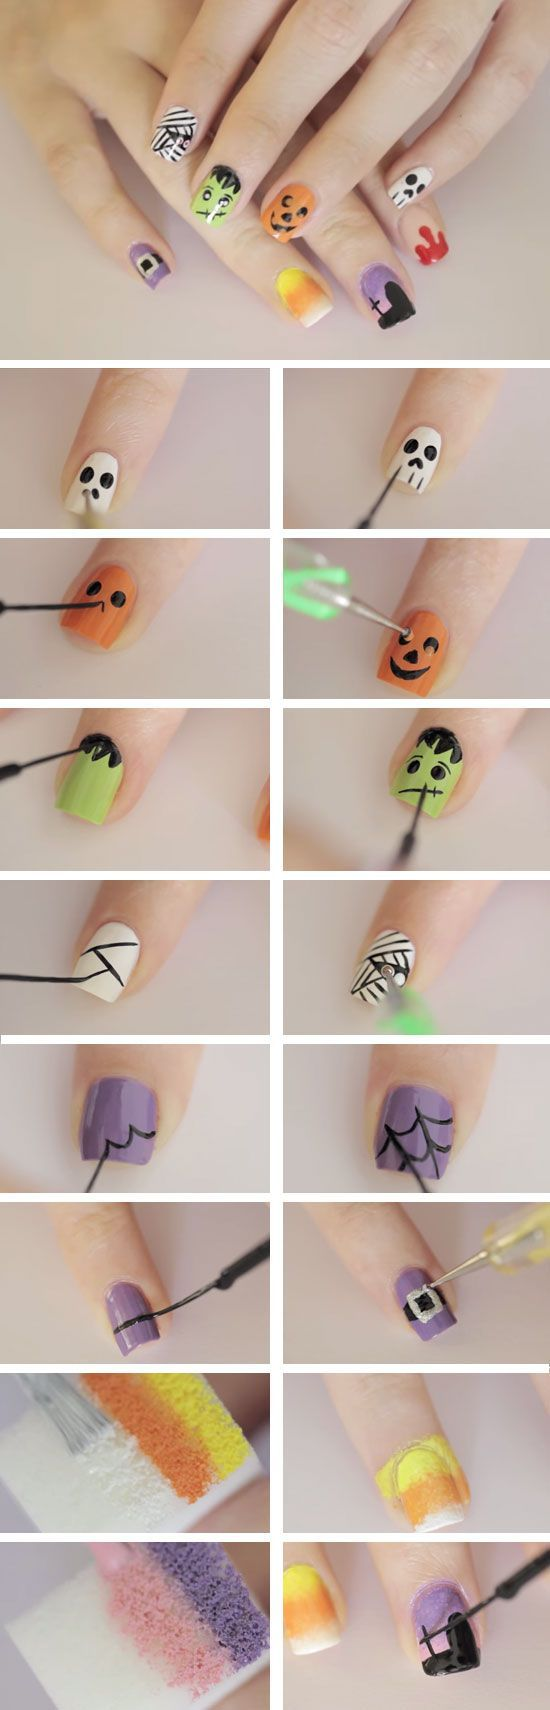 Heres how you should do your nails for halloween according to halloween diy solutioingenieria Choice Image